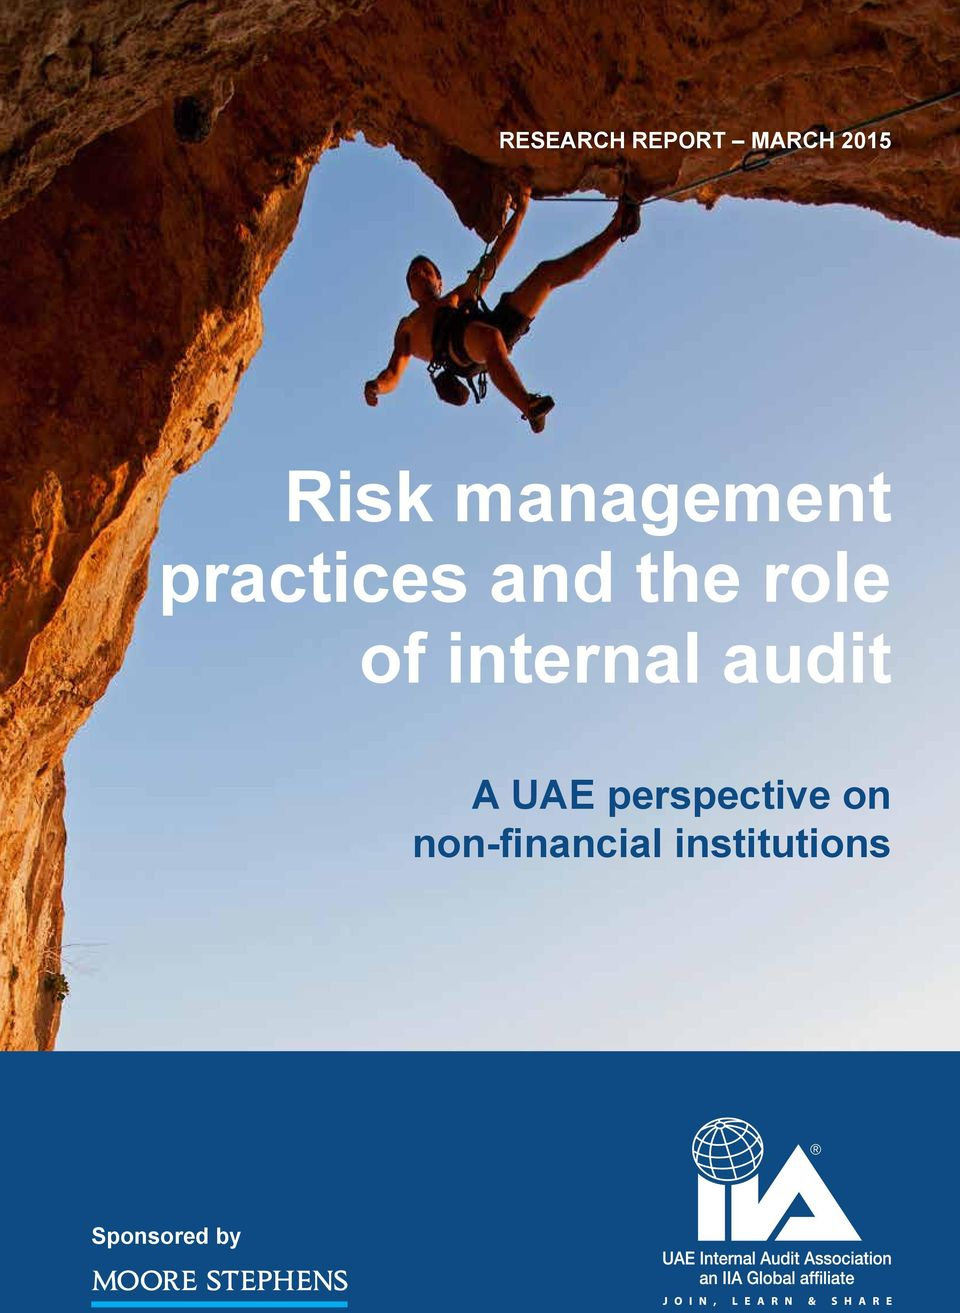 practices and the role of internal audit A UAE